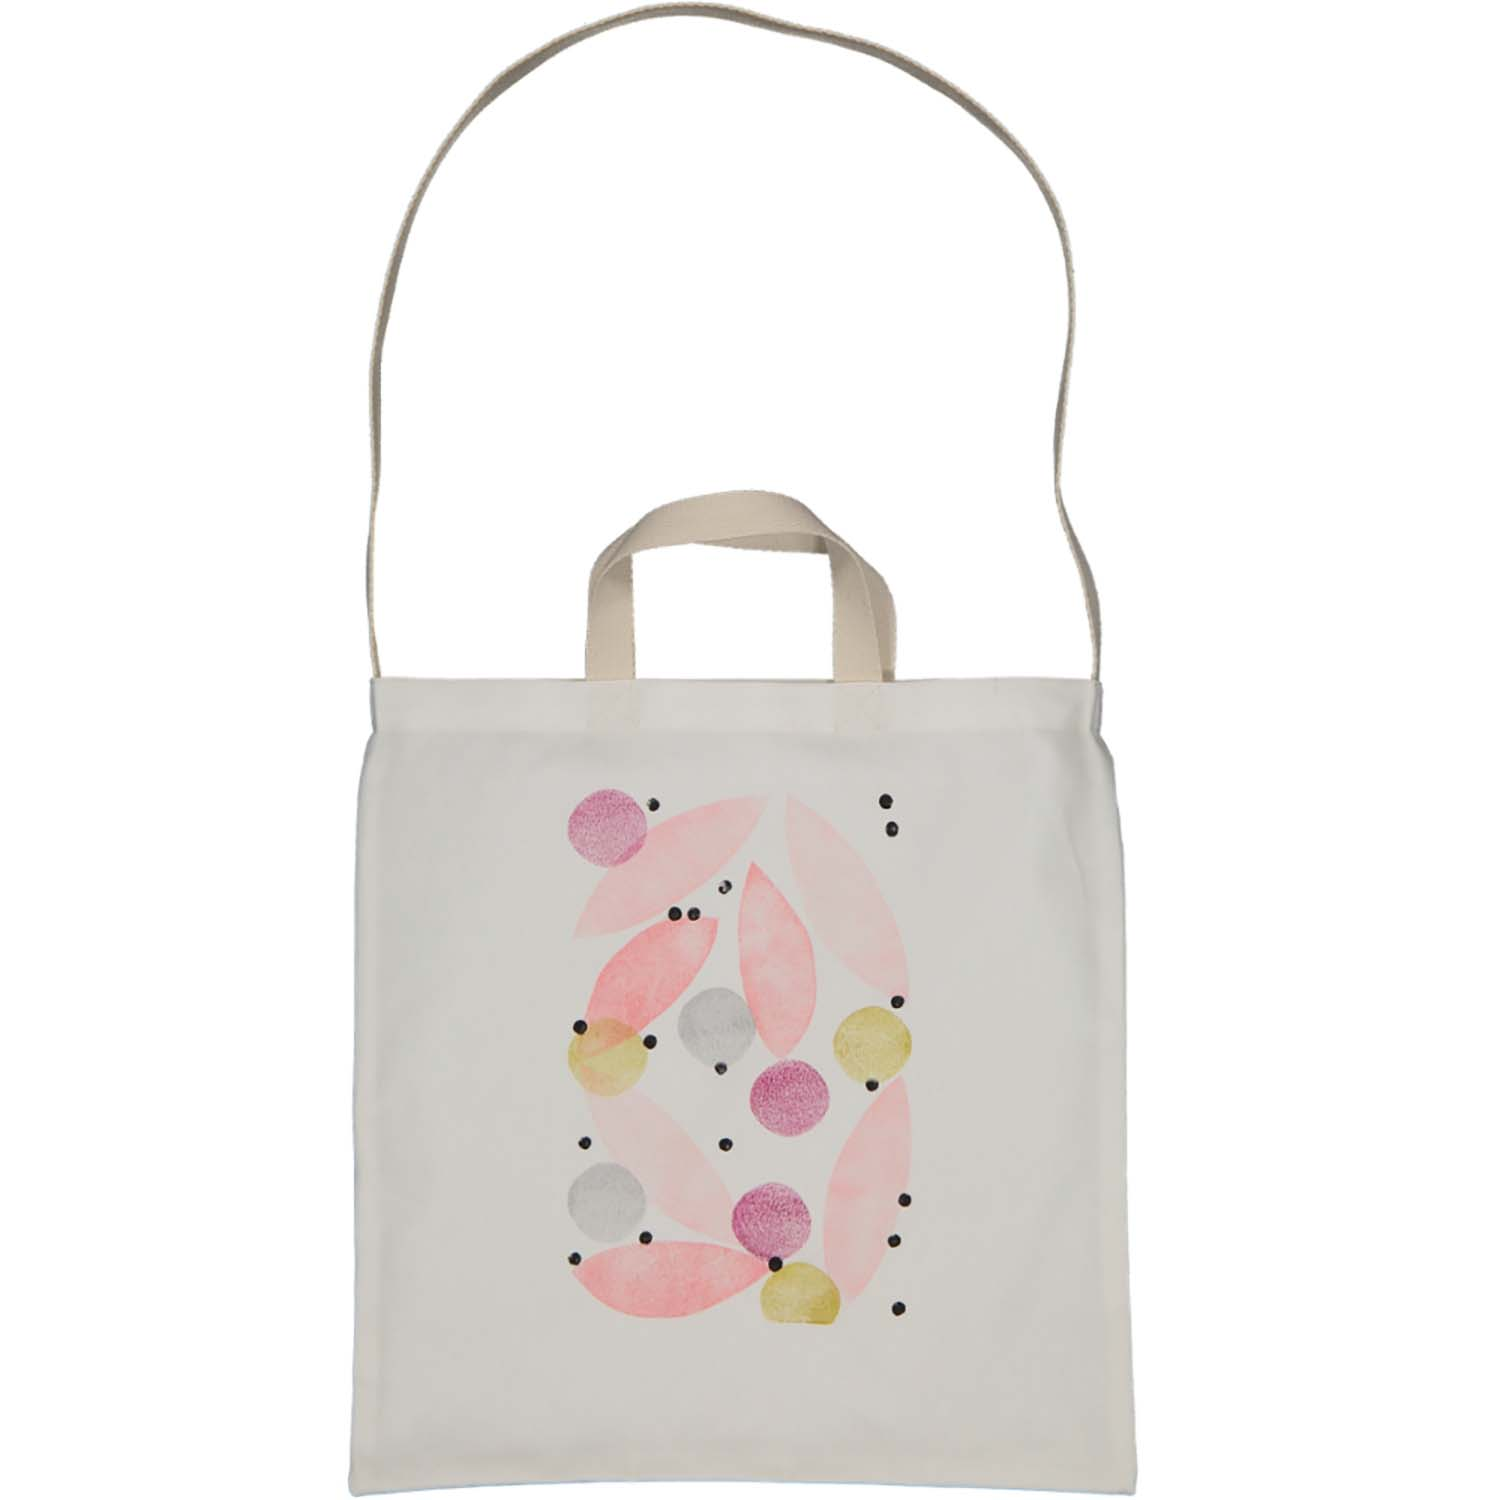 2-Way tote - pink leaves